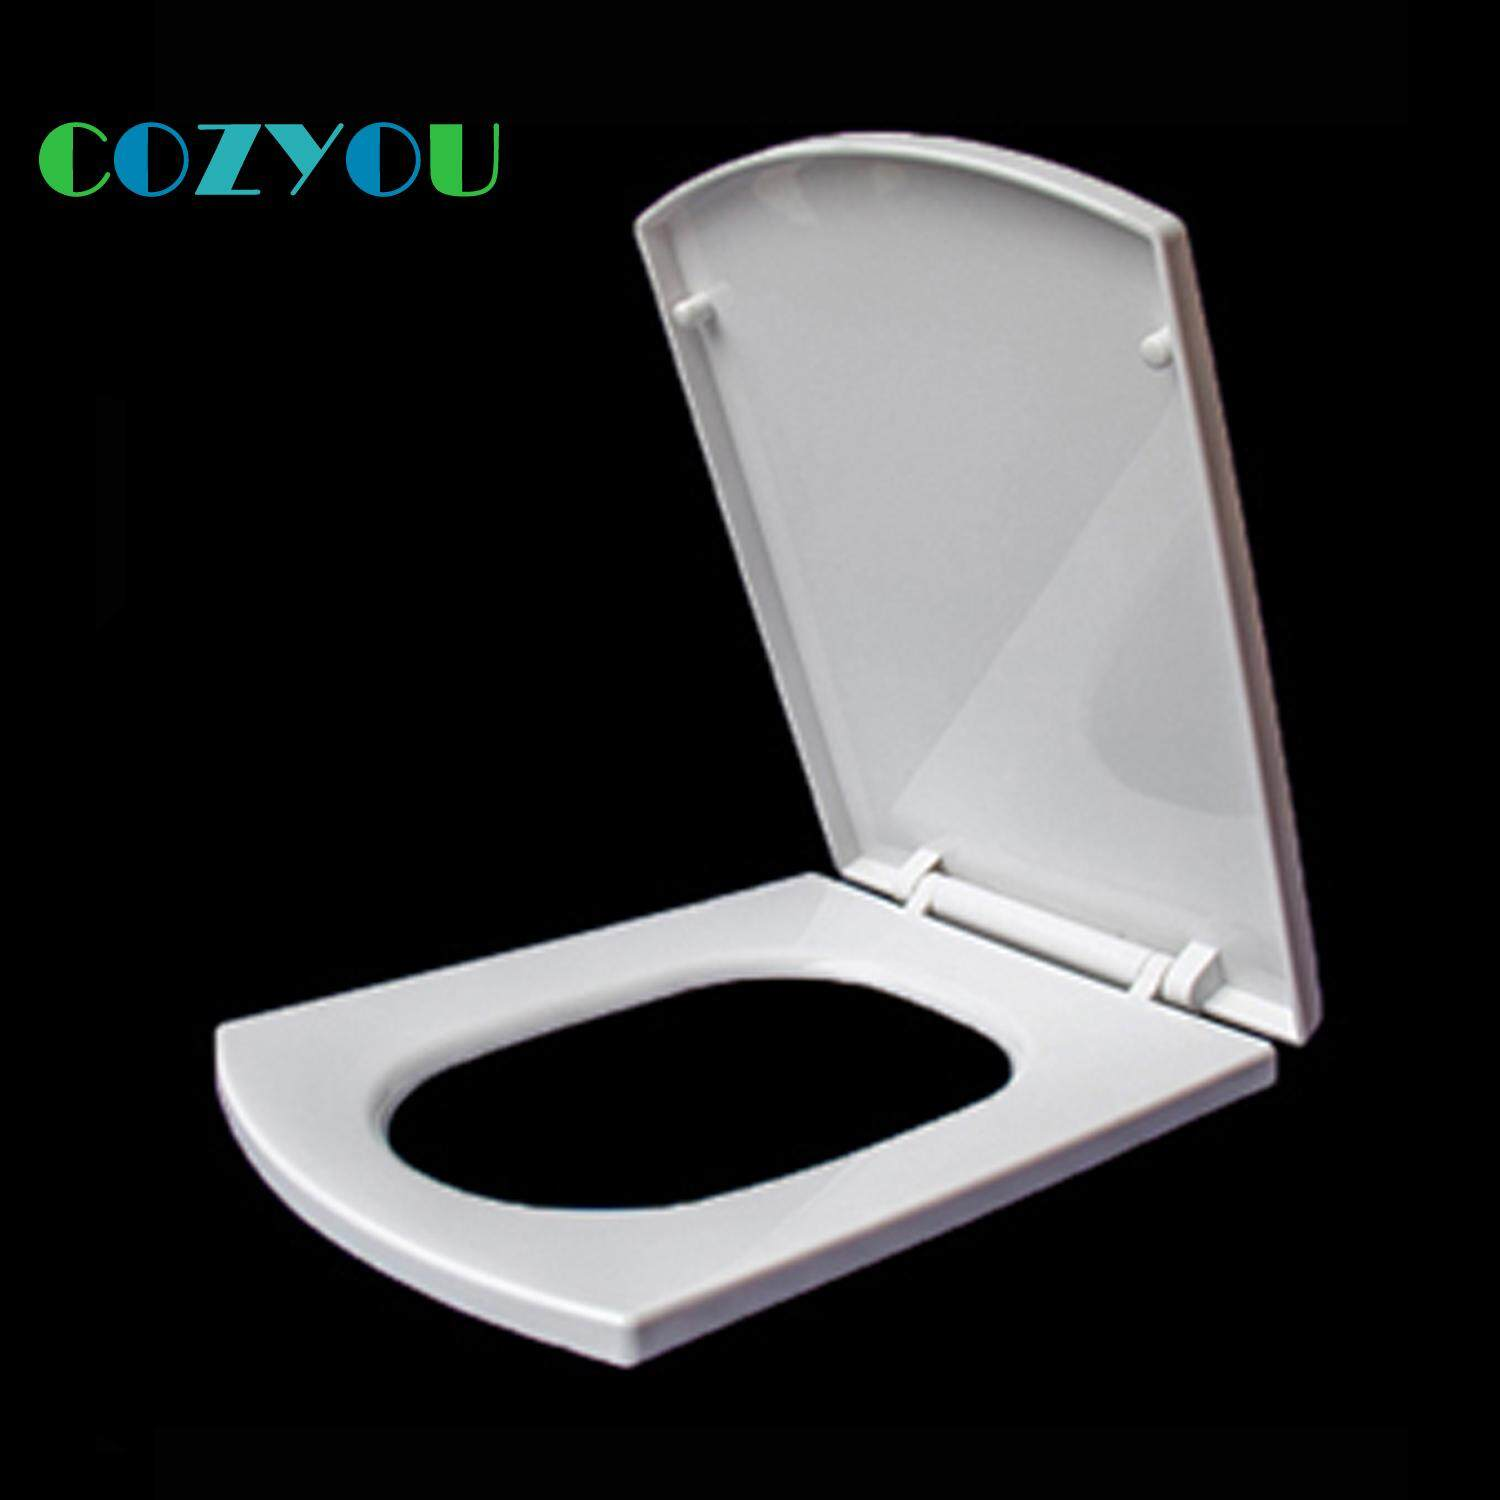 Rectangle Square Toilet seat PP soft Close Quick Release Easy installation Clean length 465mm to 512mm,width 421mm to 441mm GBP17282PF